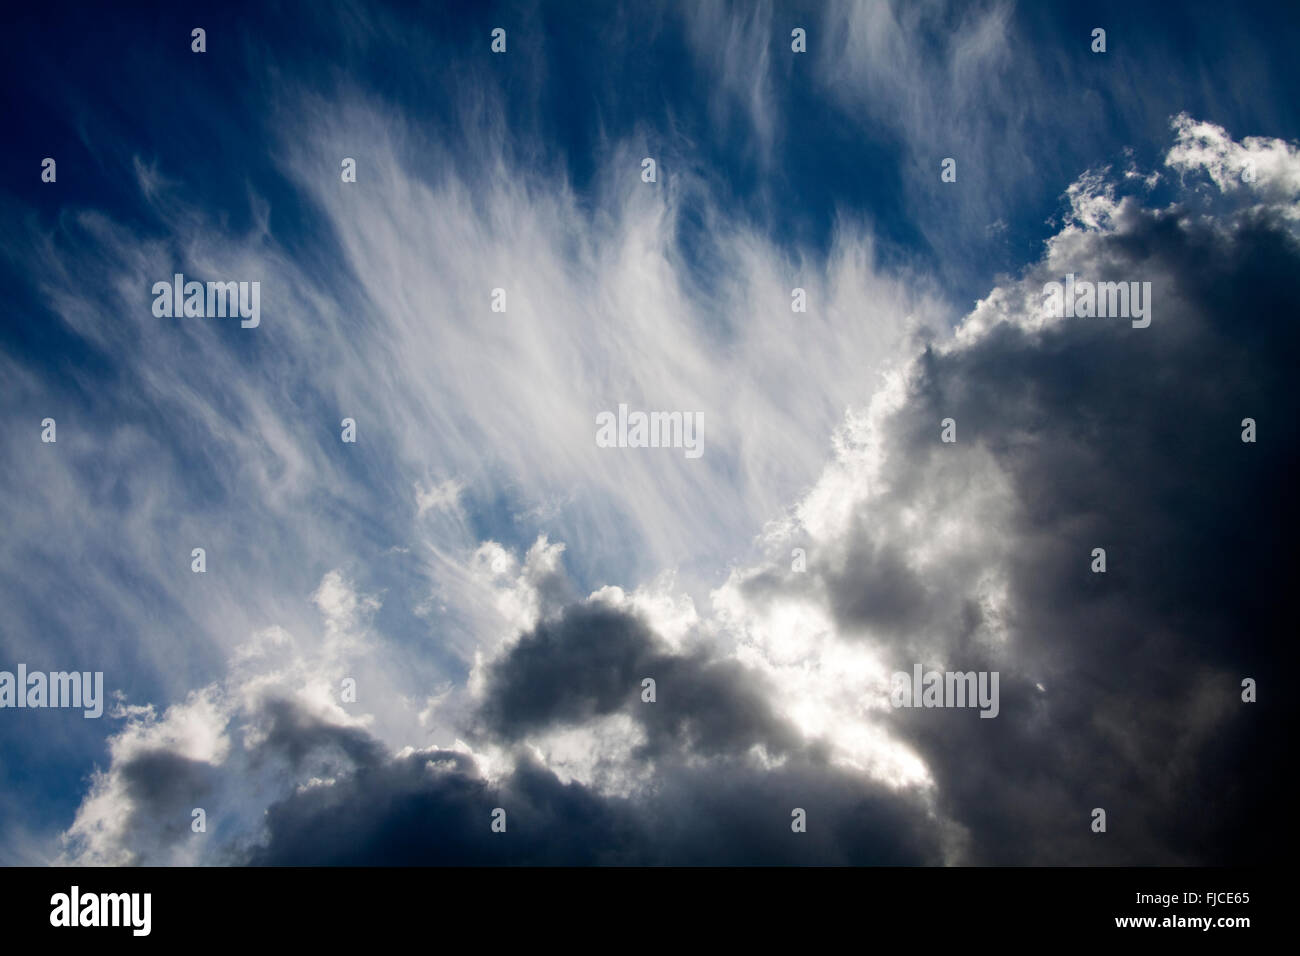 Storm Clouds - Stock Image